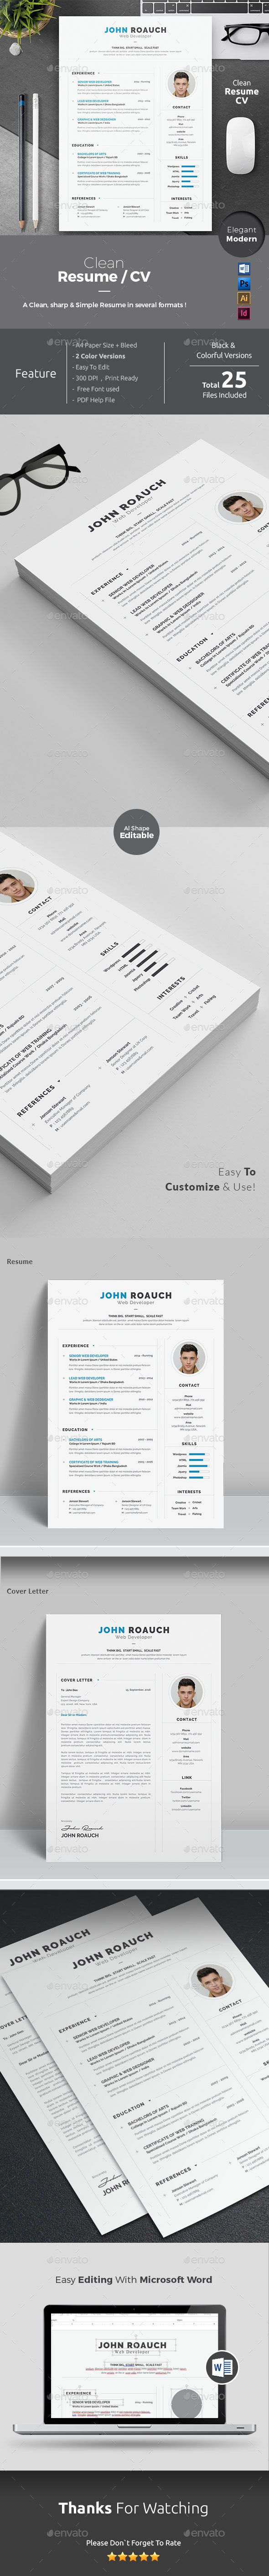 Resume Writer Reviews The  Best Images About Rusume Templates On Pinterest  Helicopter Pilot Resume with Facility Manager Resume Excel Resume Word Summary Of Qualifications For Resume